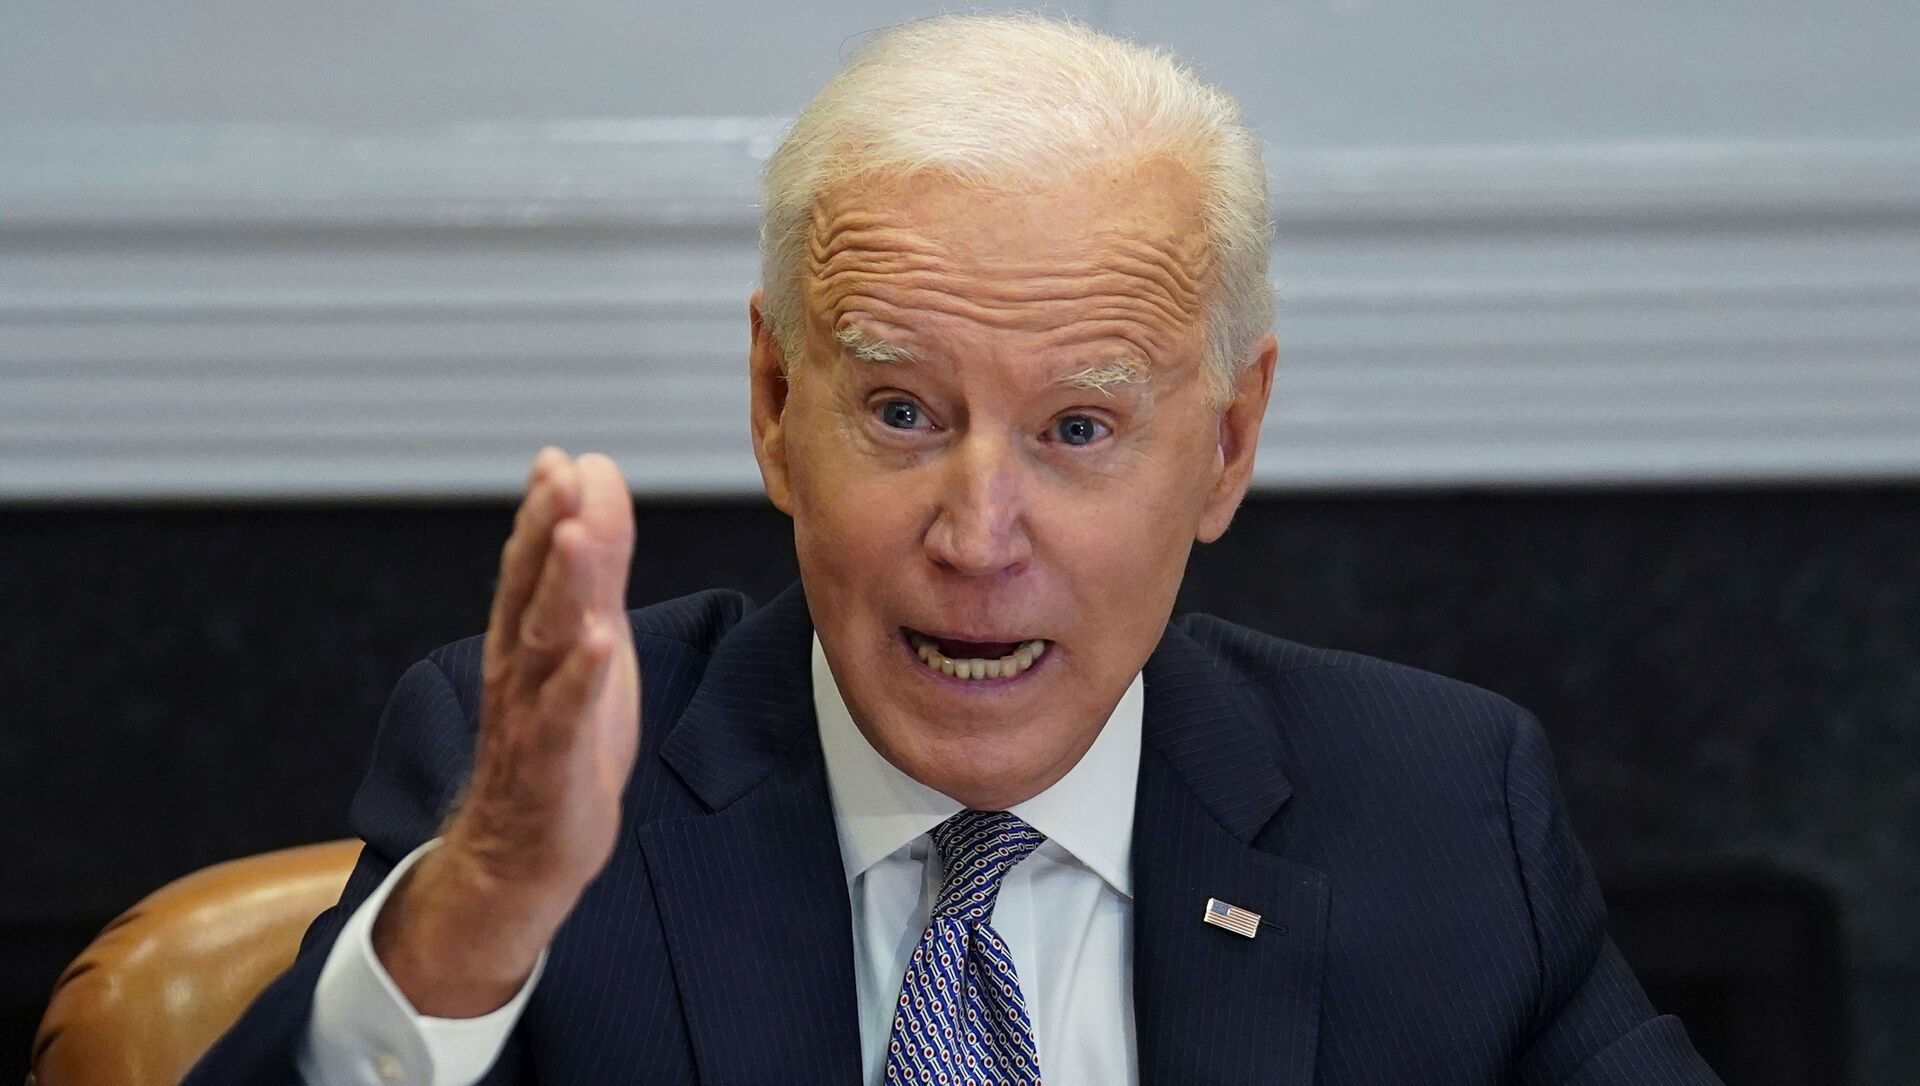 U.S. President Joe Biden speaks as he participates in the virtual CEO Summit on Semiconductor and Supply Chain Resilience from the Roosevelt Room at the White House in Washington, U.S., April 12, 2021. - Sputnik International, 1920, 12.04.2021